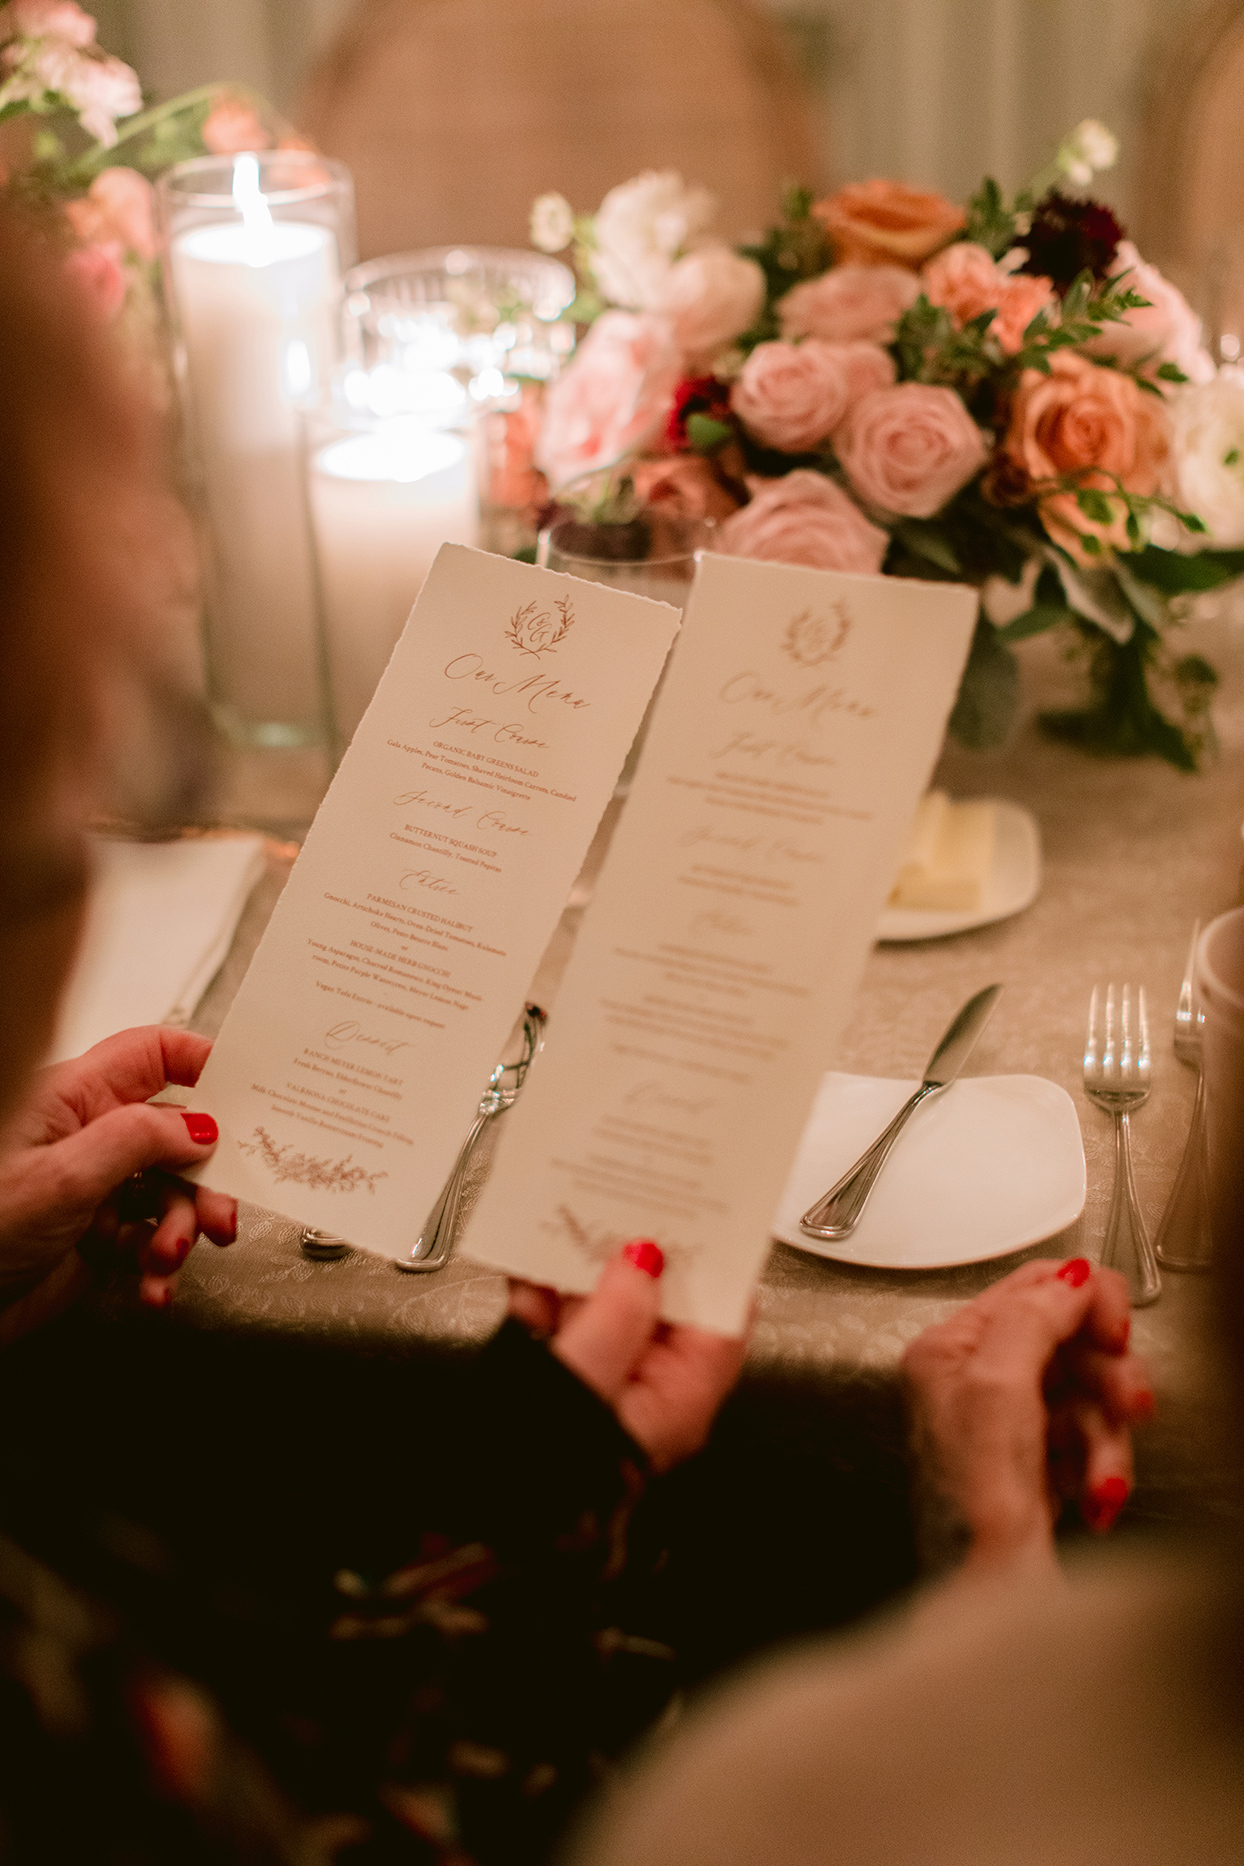 guests holding wedding menus at reception tables under candle light